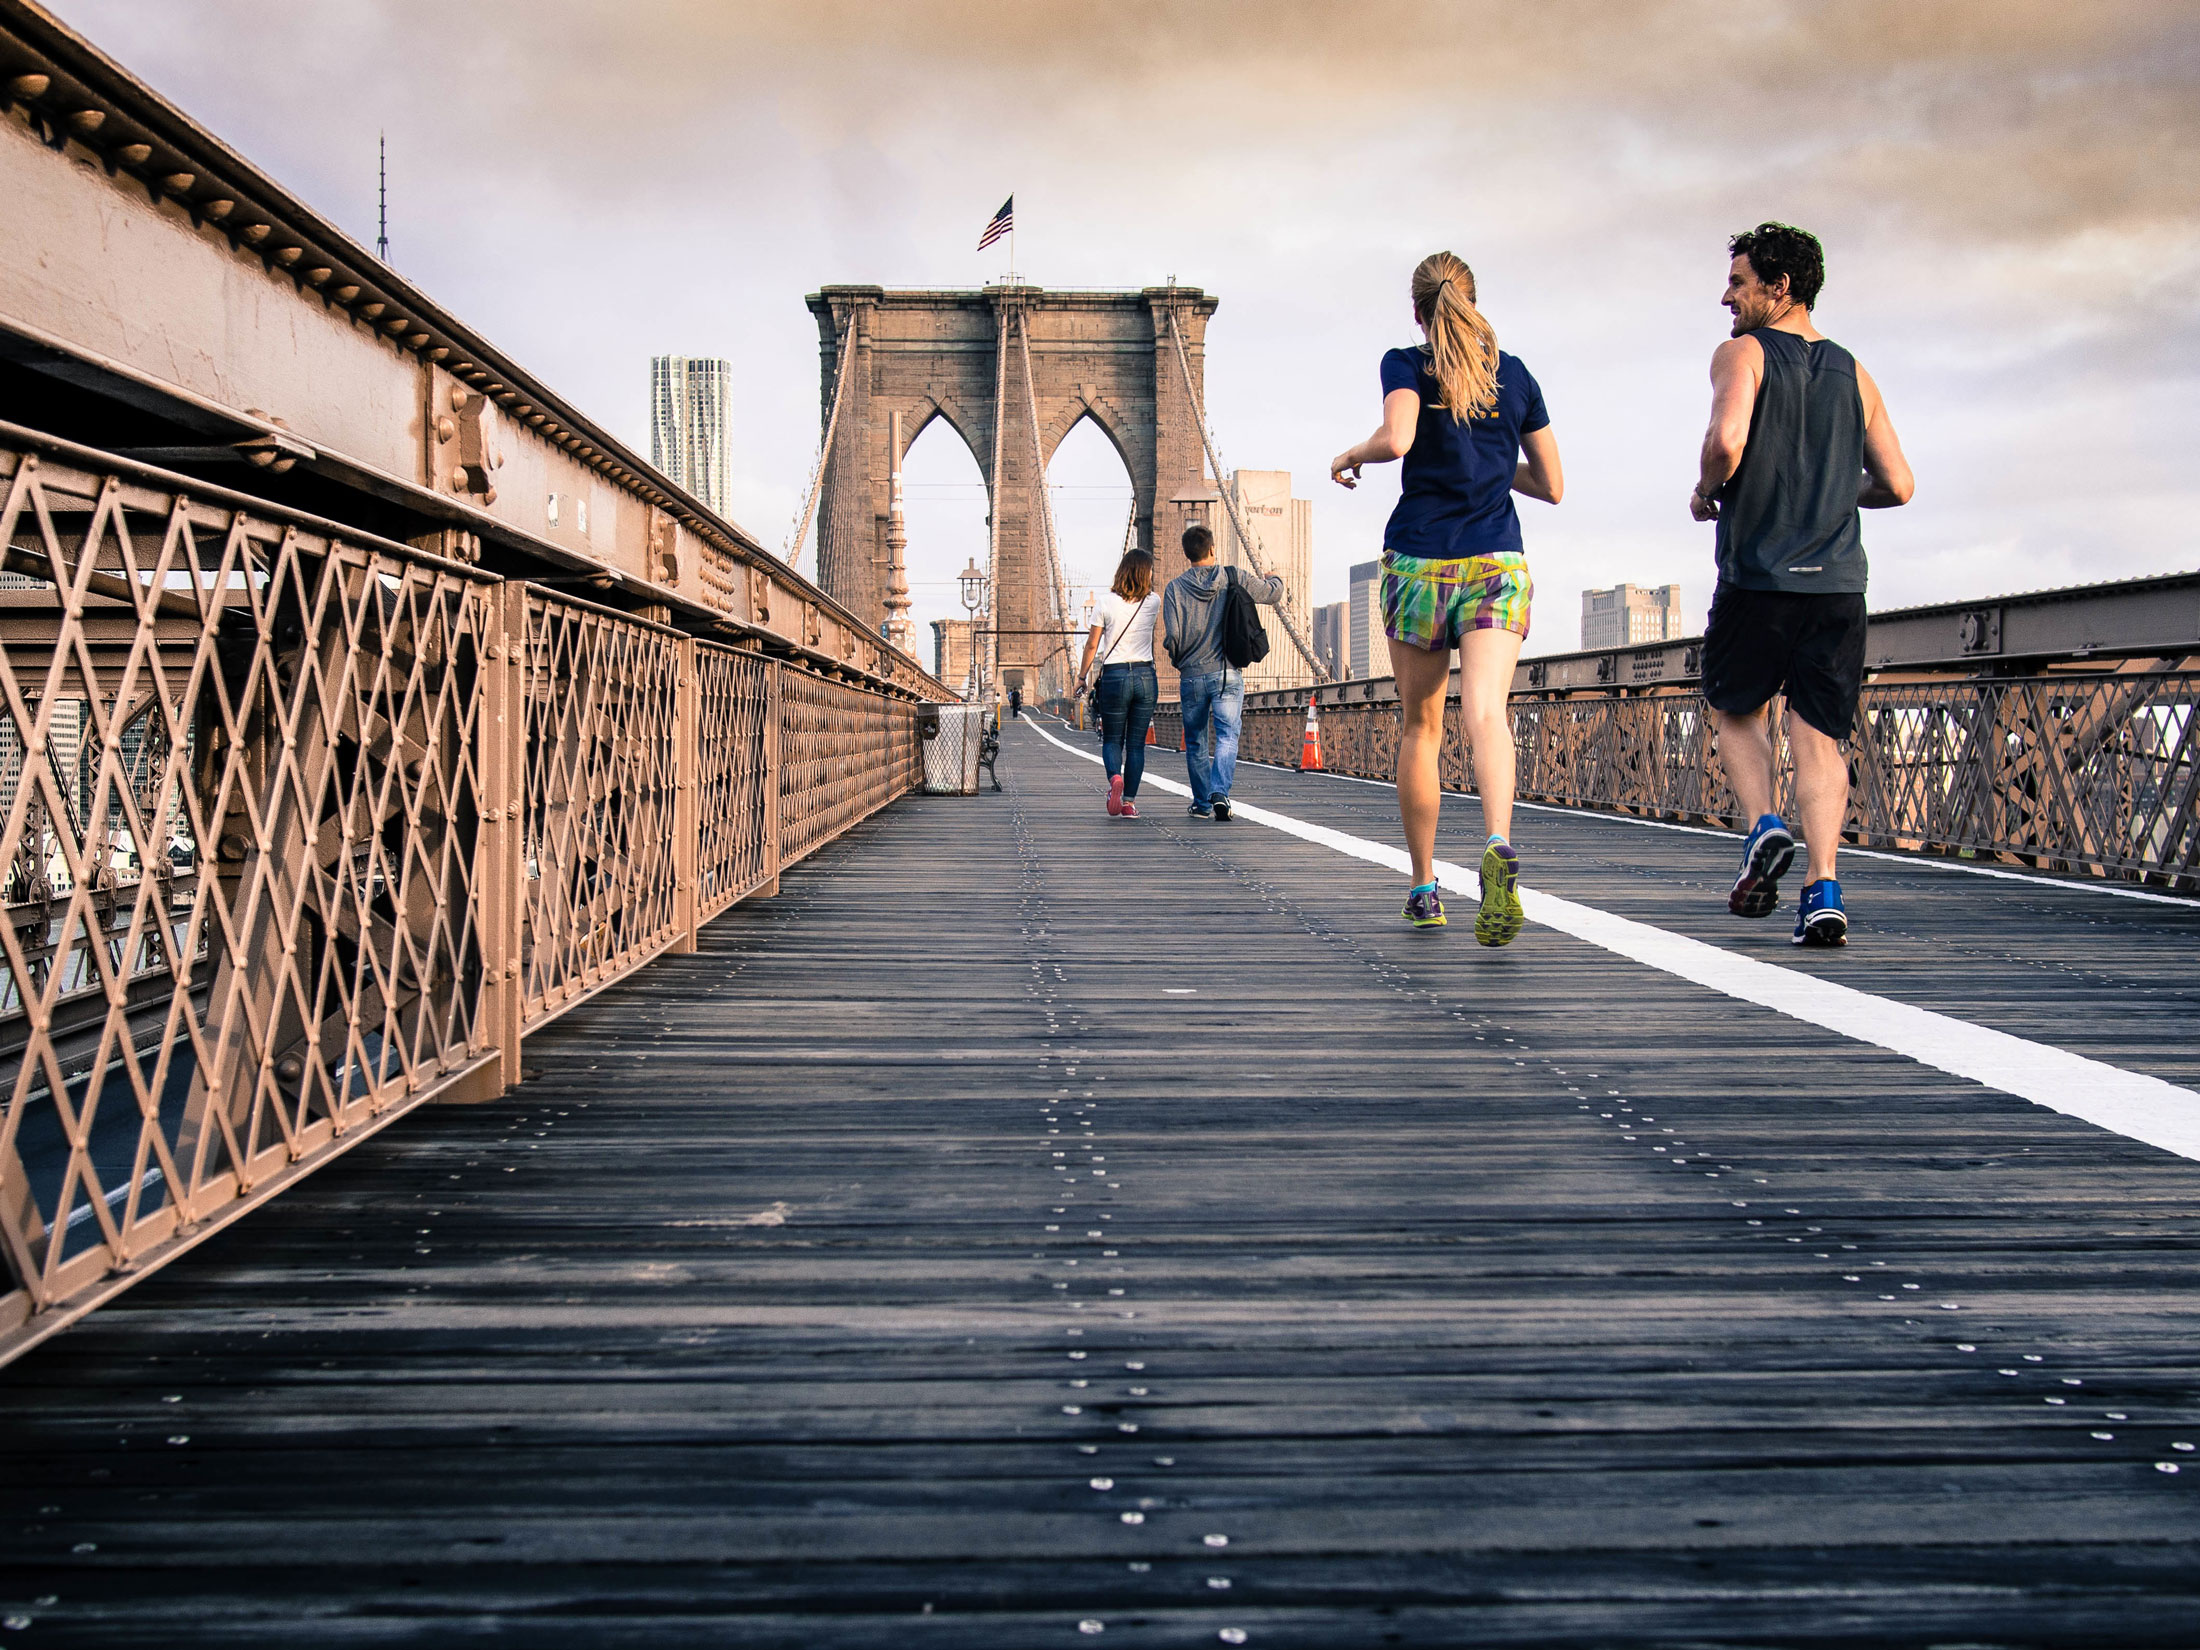 Running and walking are both important aspects of general wellness.